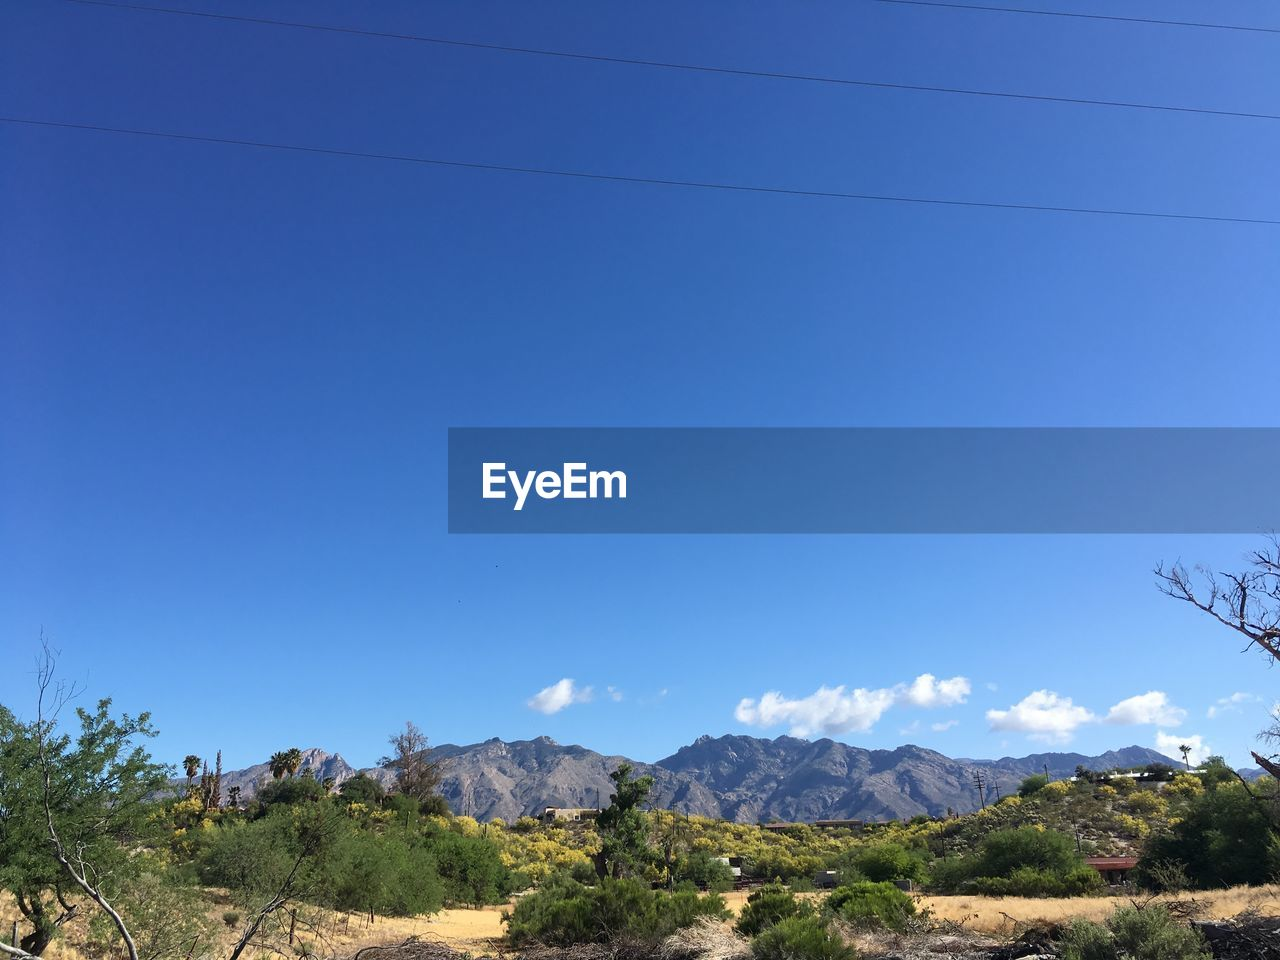 sky, blue, mountain, scenics - nature, tranquility, tranquil scene, beauty in nature, clear sky, nature, plant, no people, tree, copy space, day, environment, landscape, non-urban scene, cable, mountain range, idyllic, outdoors, arid climate